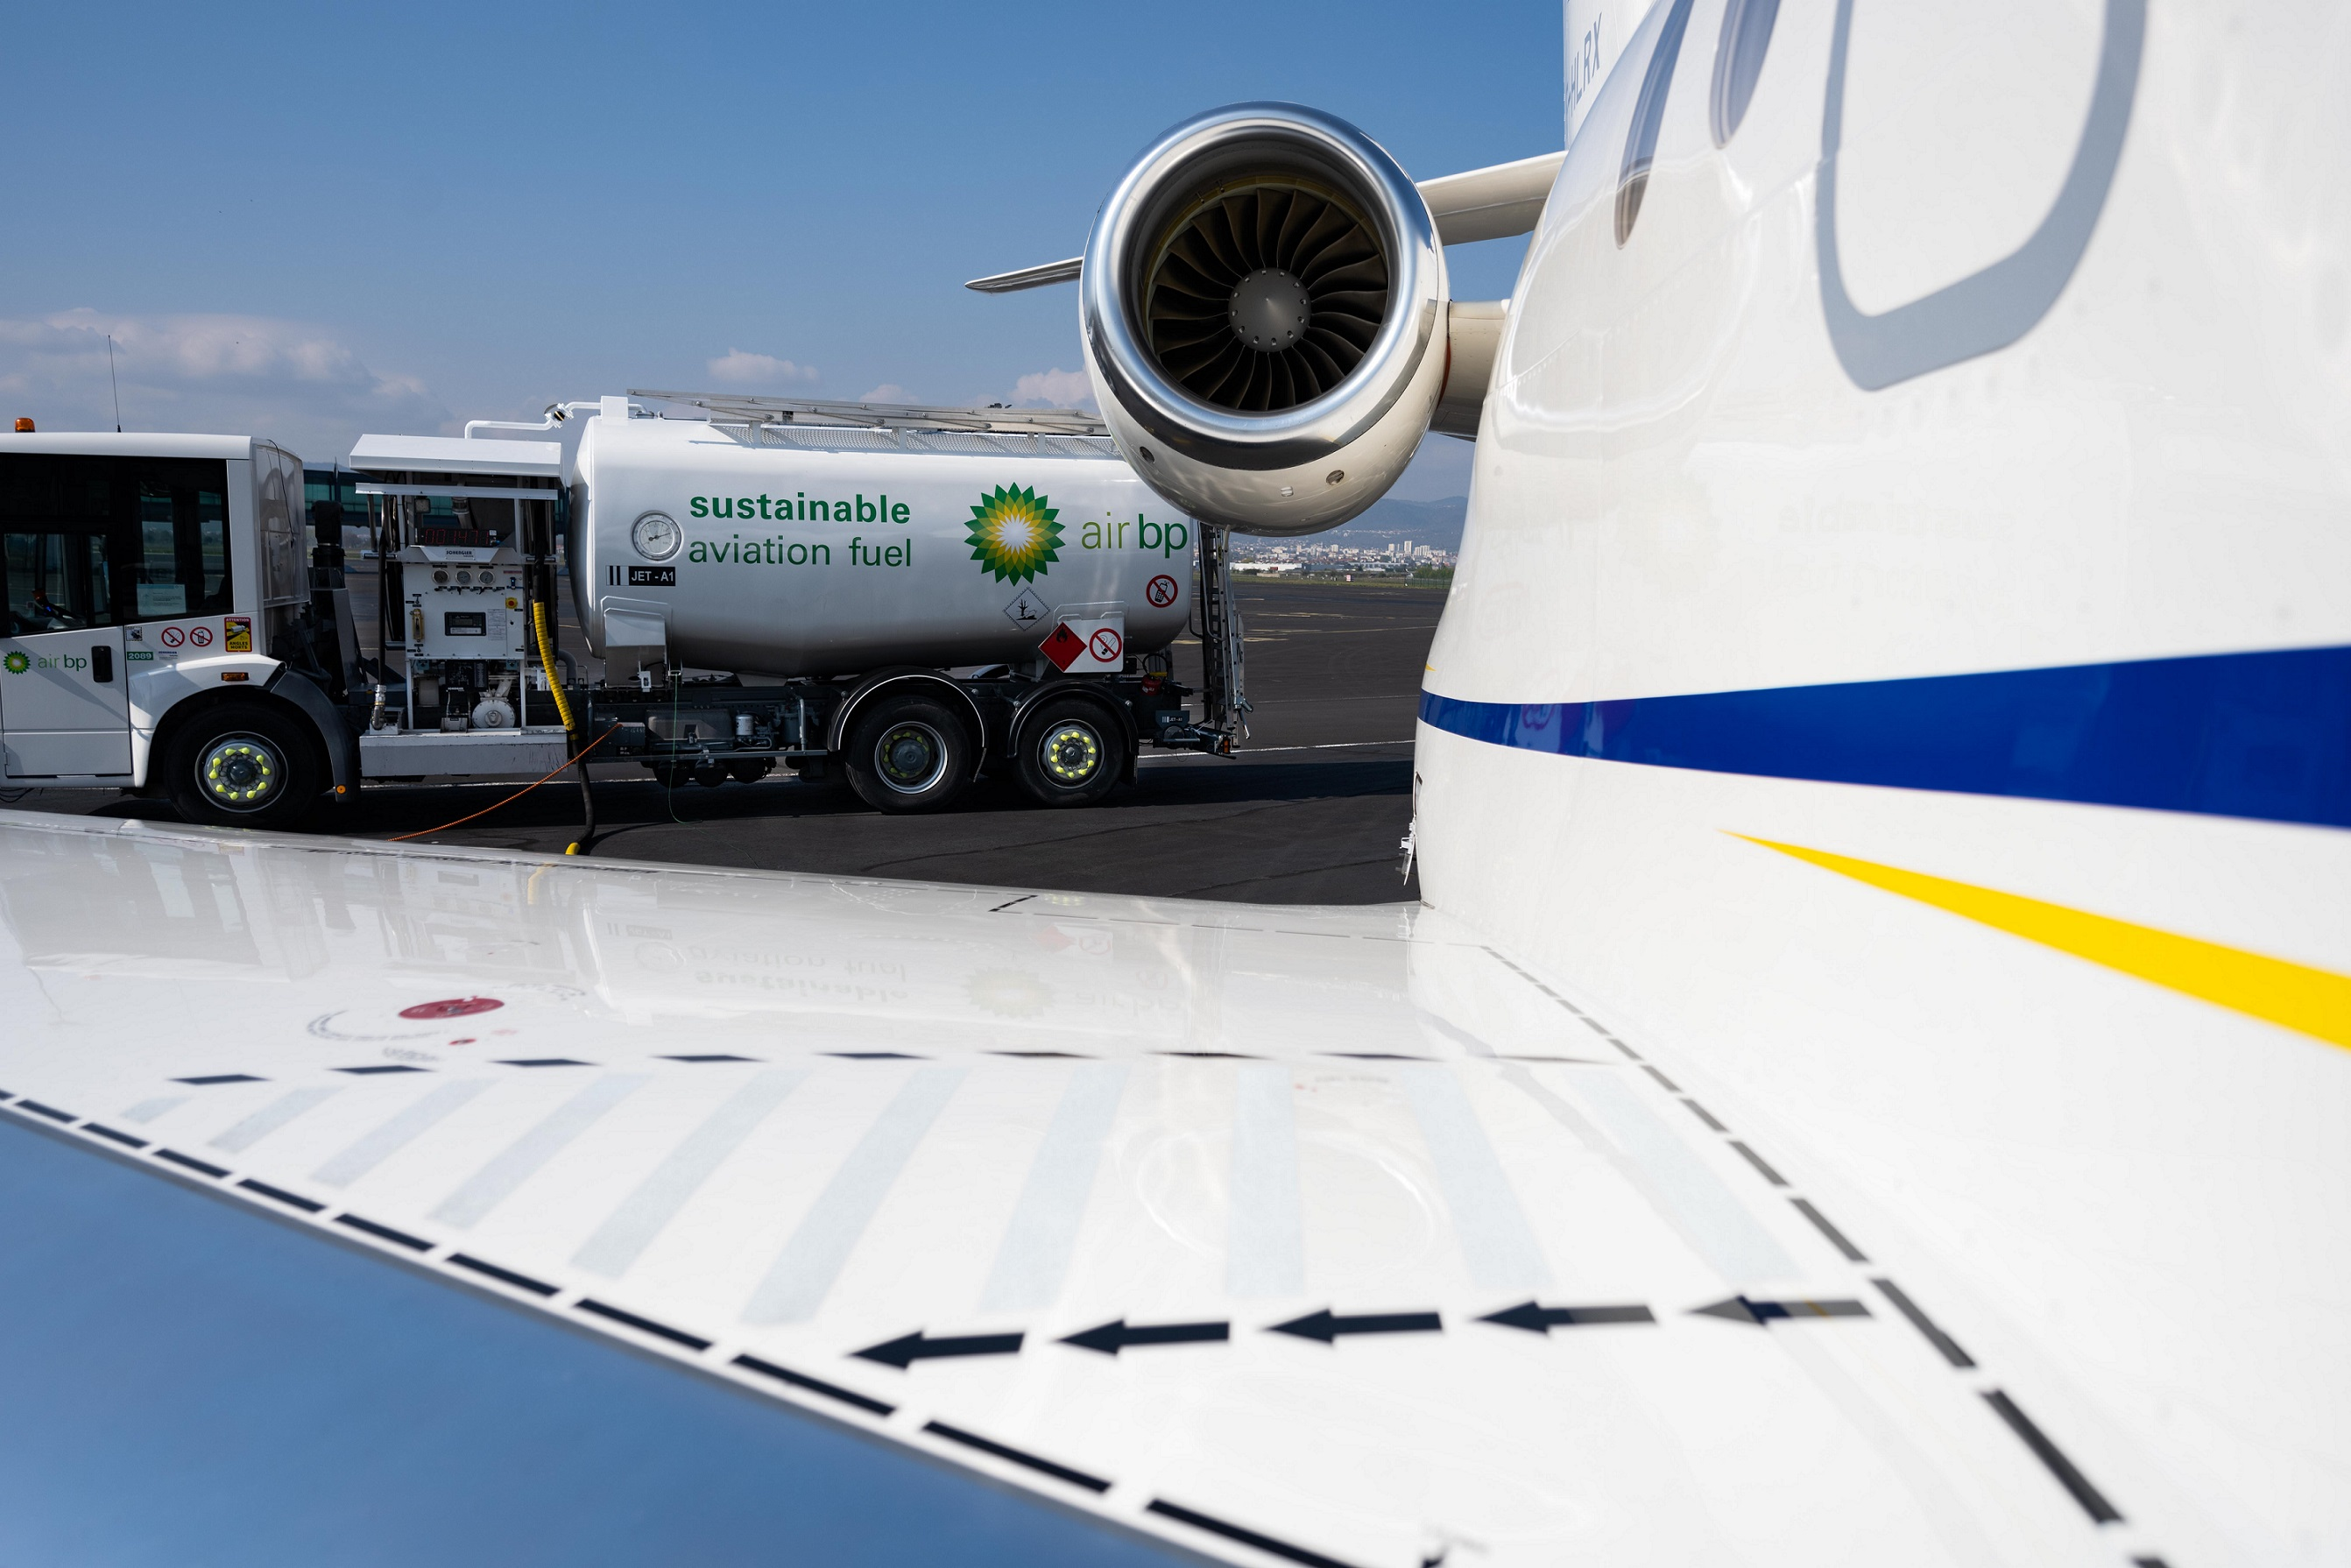 Air bp's sustainable aviation fuel takes off at France's Clermont Ferrand Airport